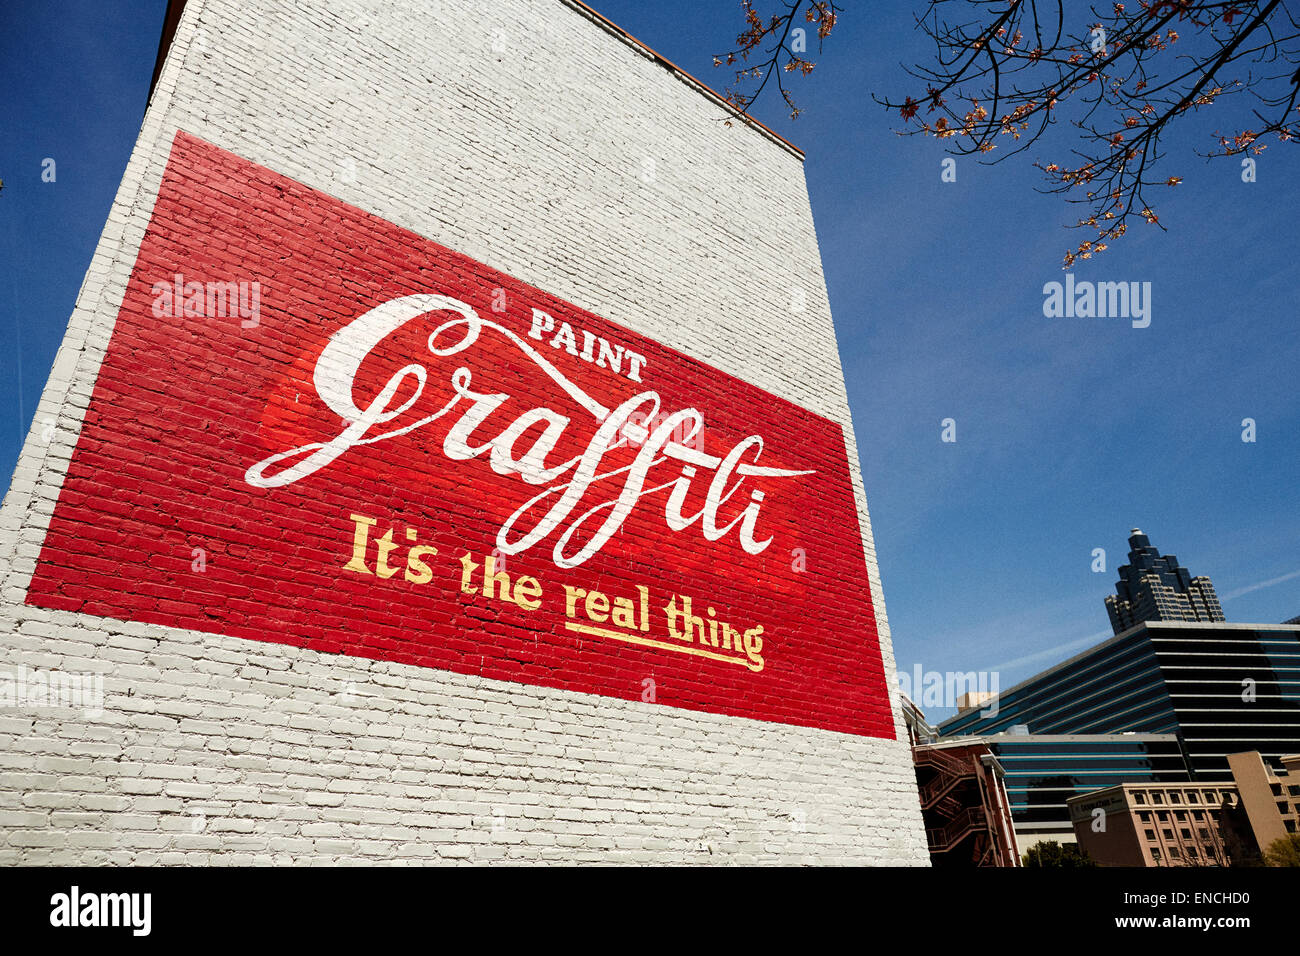 Downtown Atlanta in Georga USA   Picture:  Coka Cola advert paint on a gabel end wall enjoy its the  real thing, - Stock Image